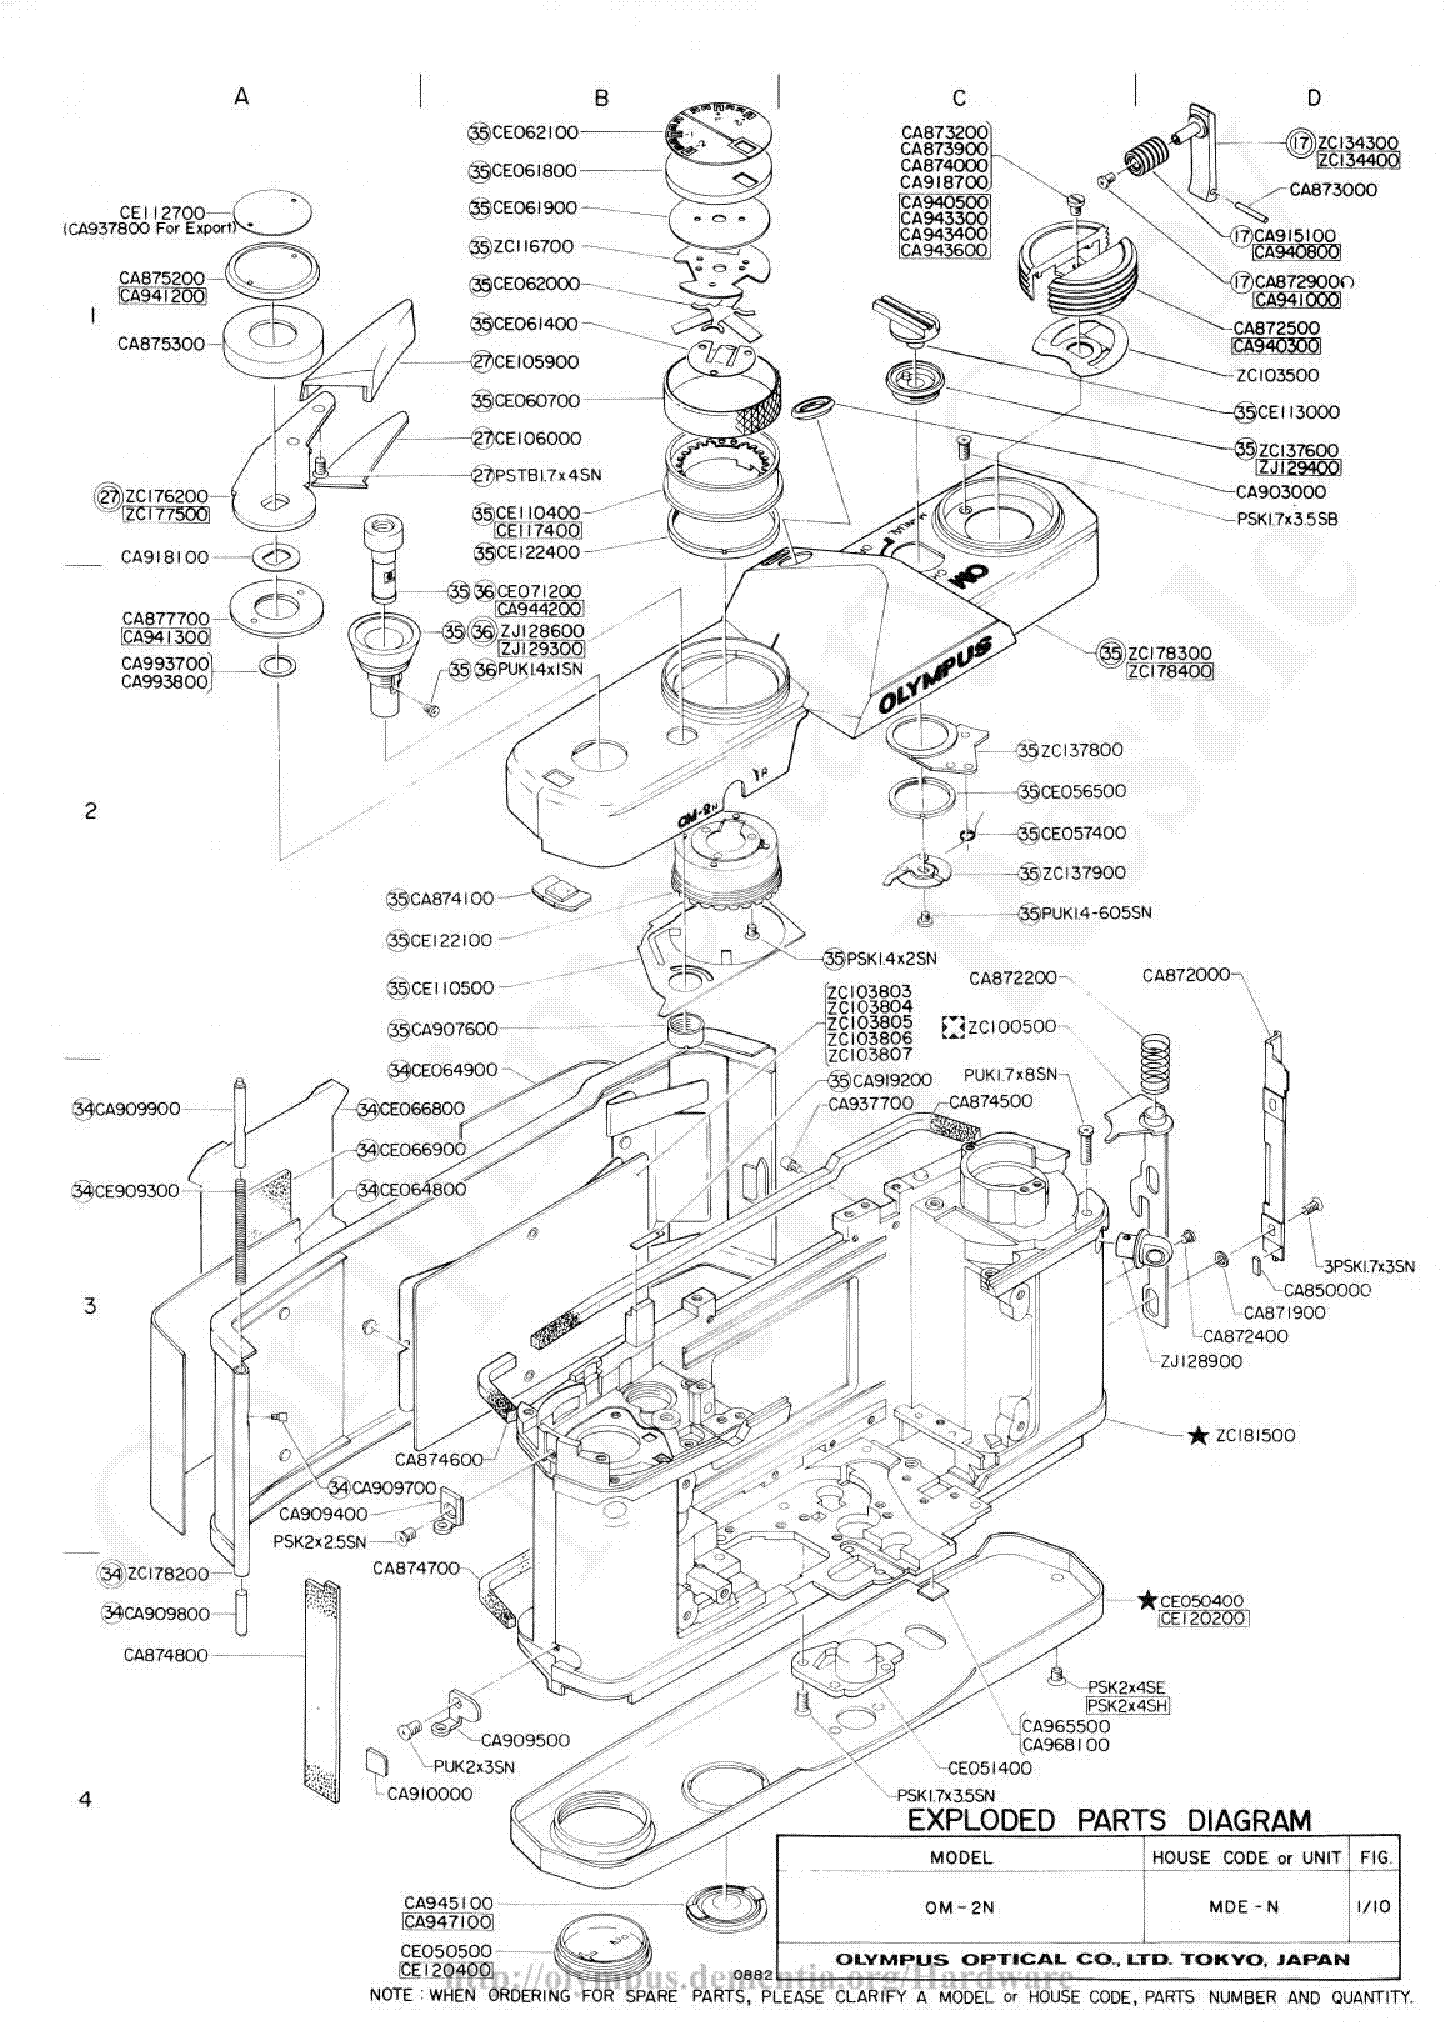 OLYMPUS OM-2N EXPLODED PARTS DIAGRAM Service Manual